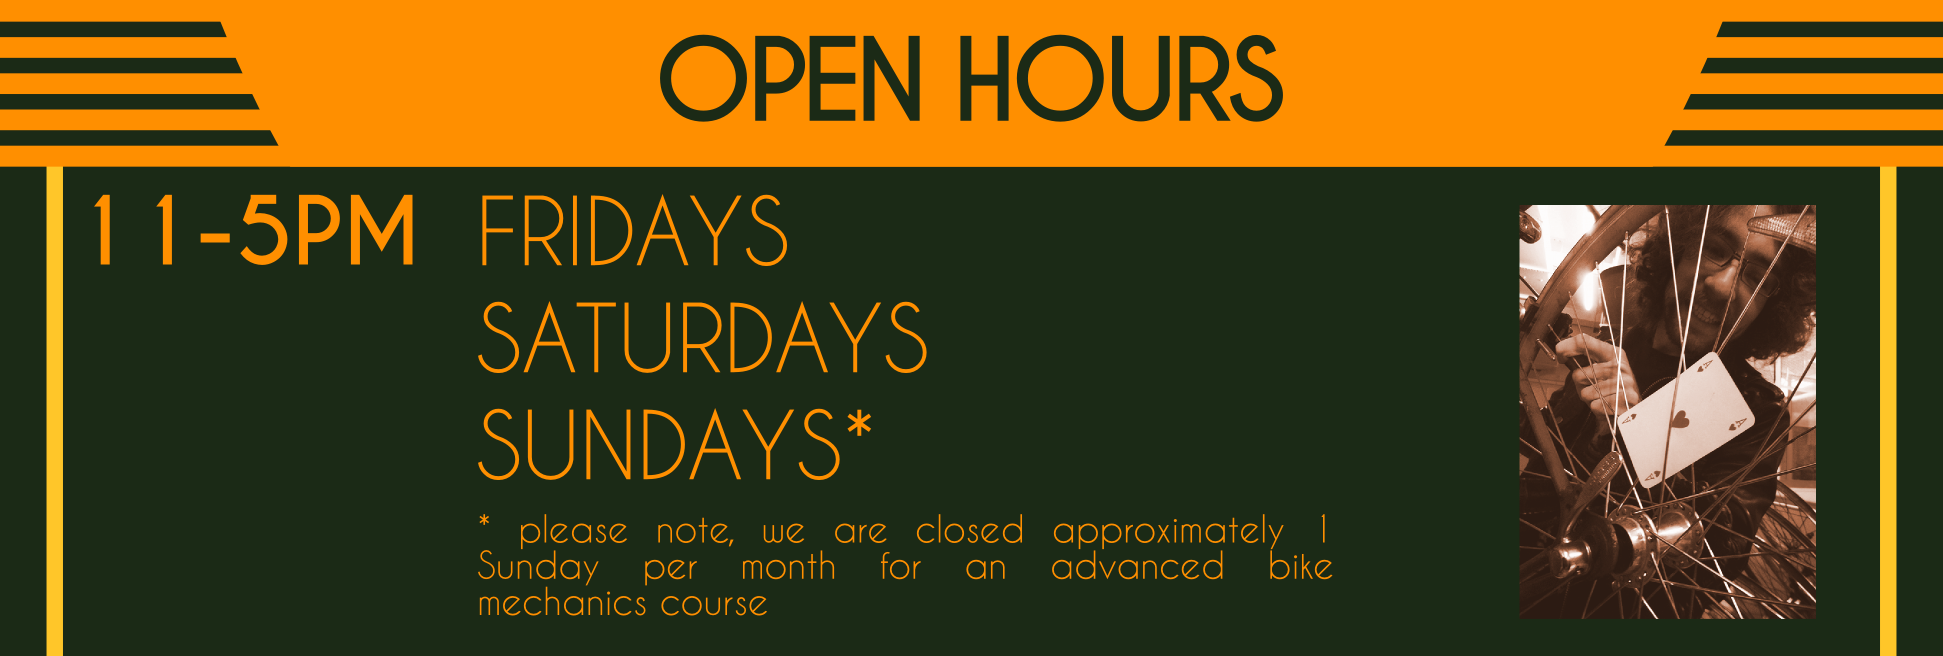 New hours 2014